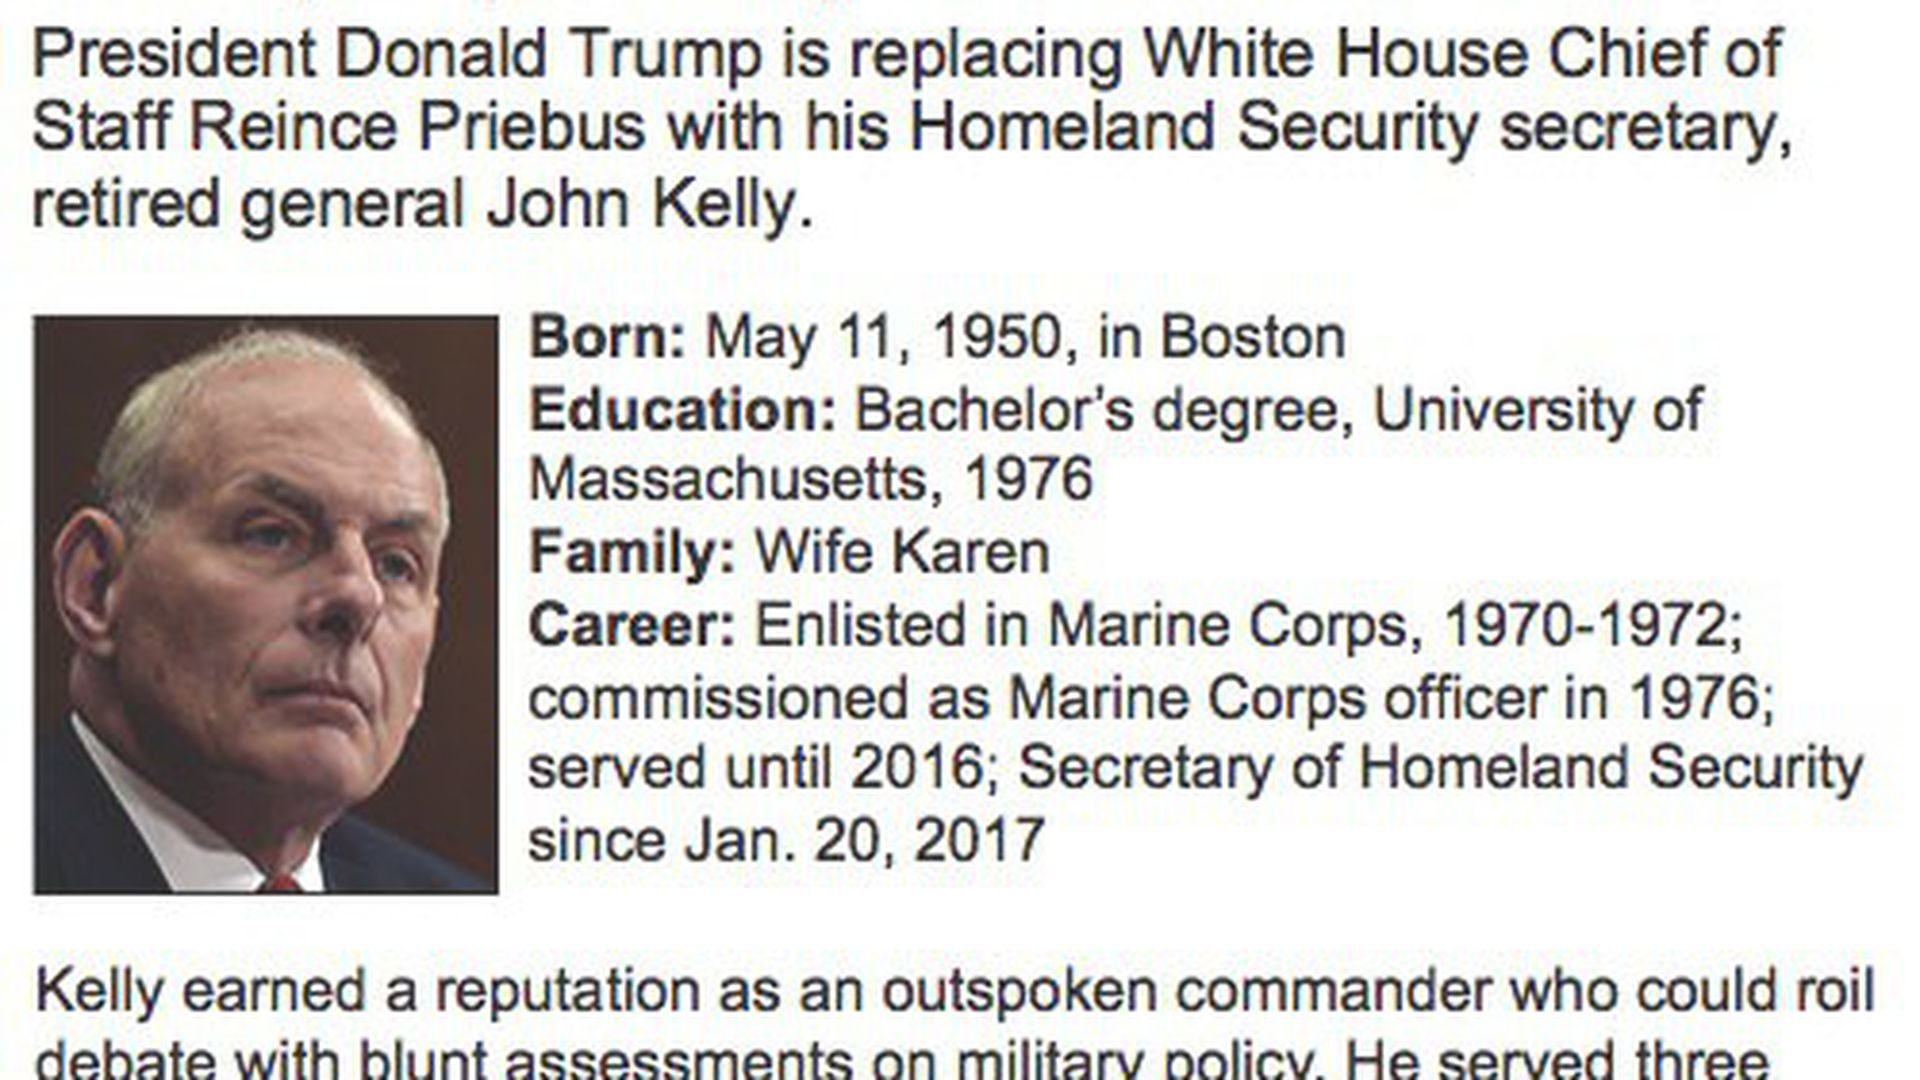 A brief biography of John Kelly